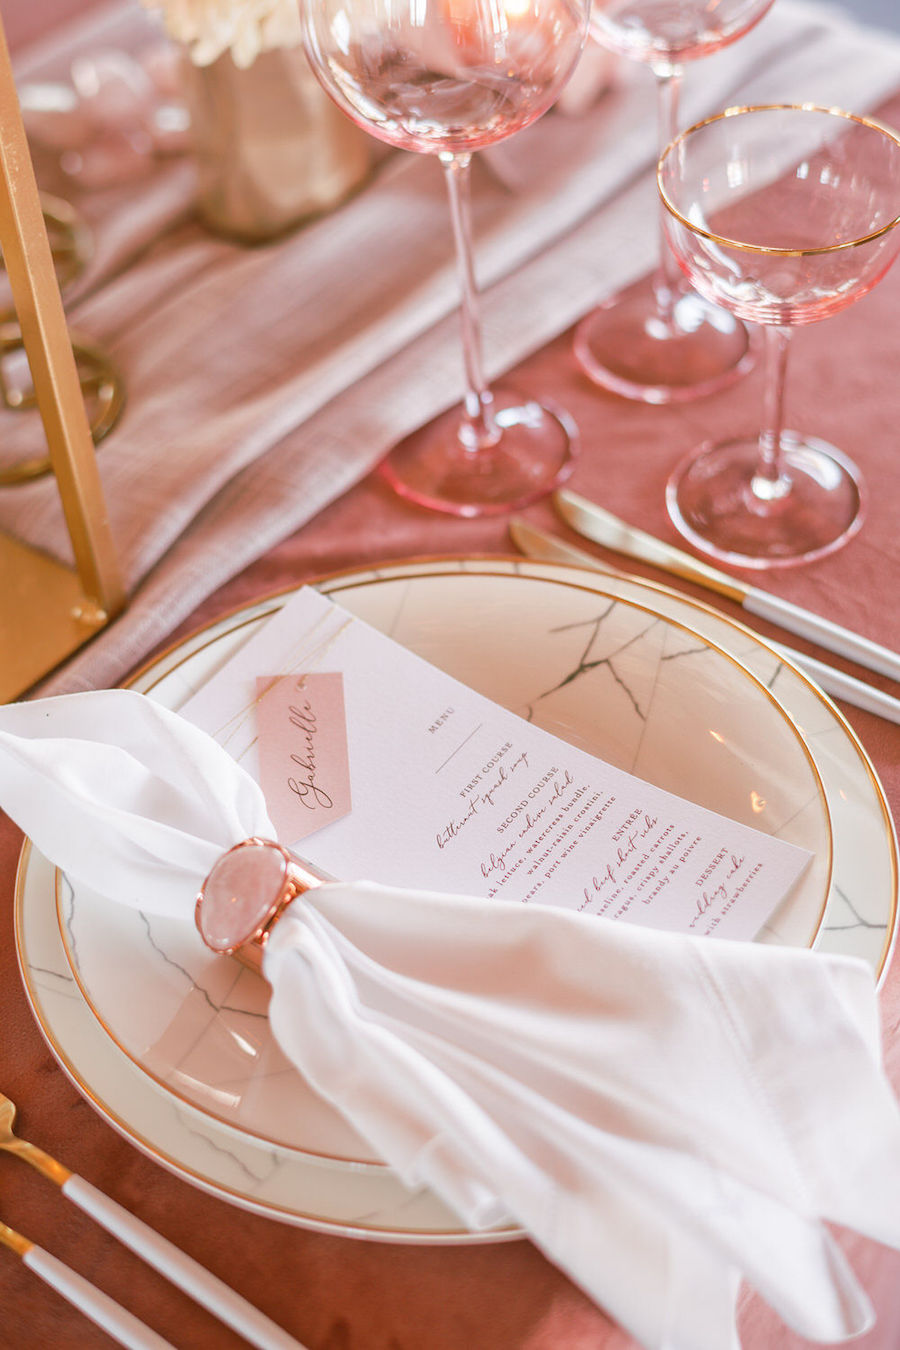 Signature Party Rentals Ft On Luxe Linen California Southern California Orange County Wedding Seating D Linen Rentals Floral Design Hemstitch Napkin